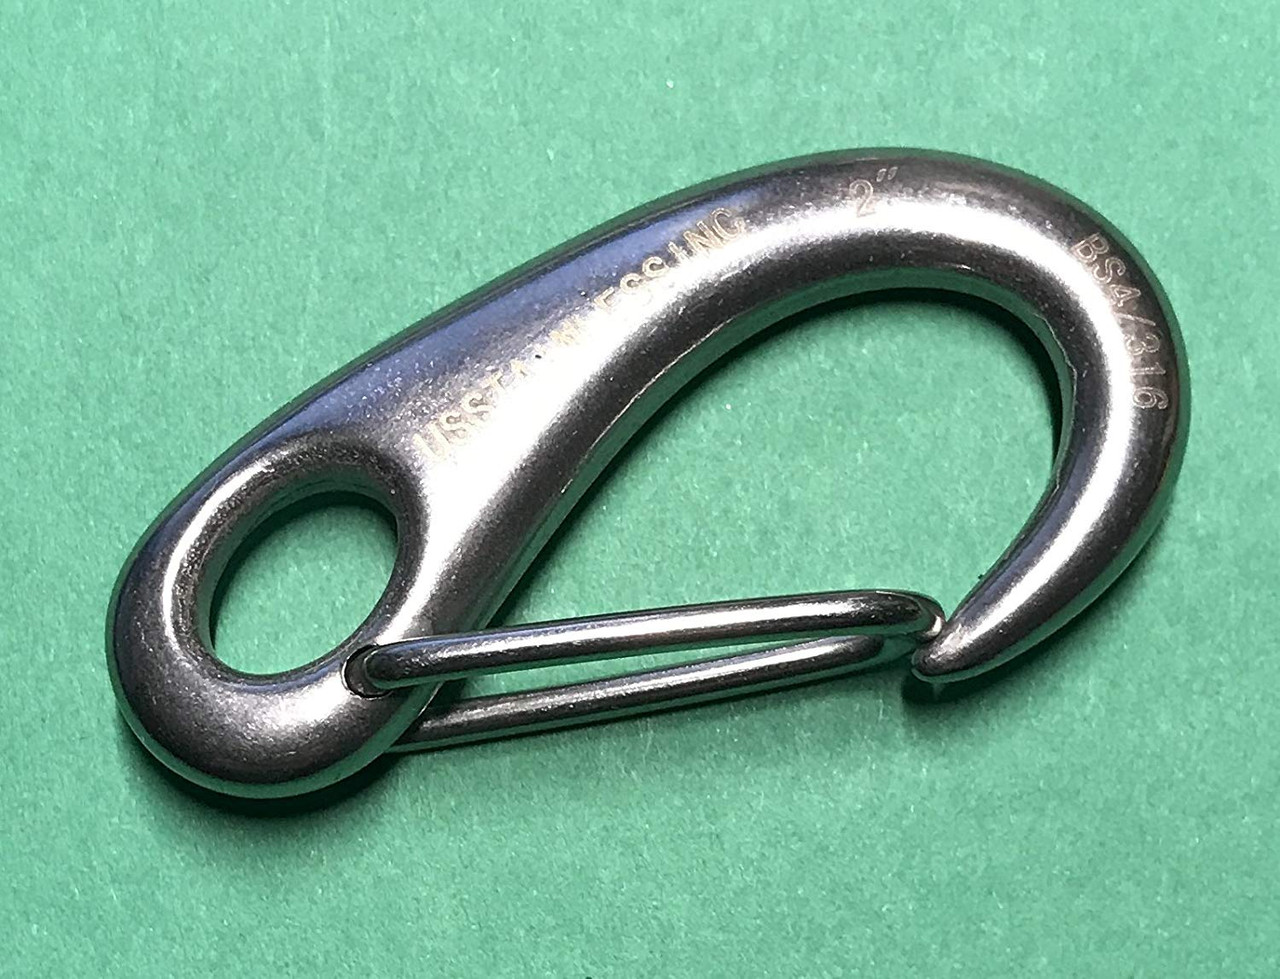 Stainless Steel 304 Spring Gate Snap Hook Clip Marine Grade Lobster Claw